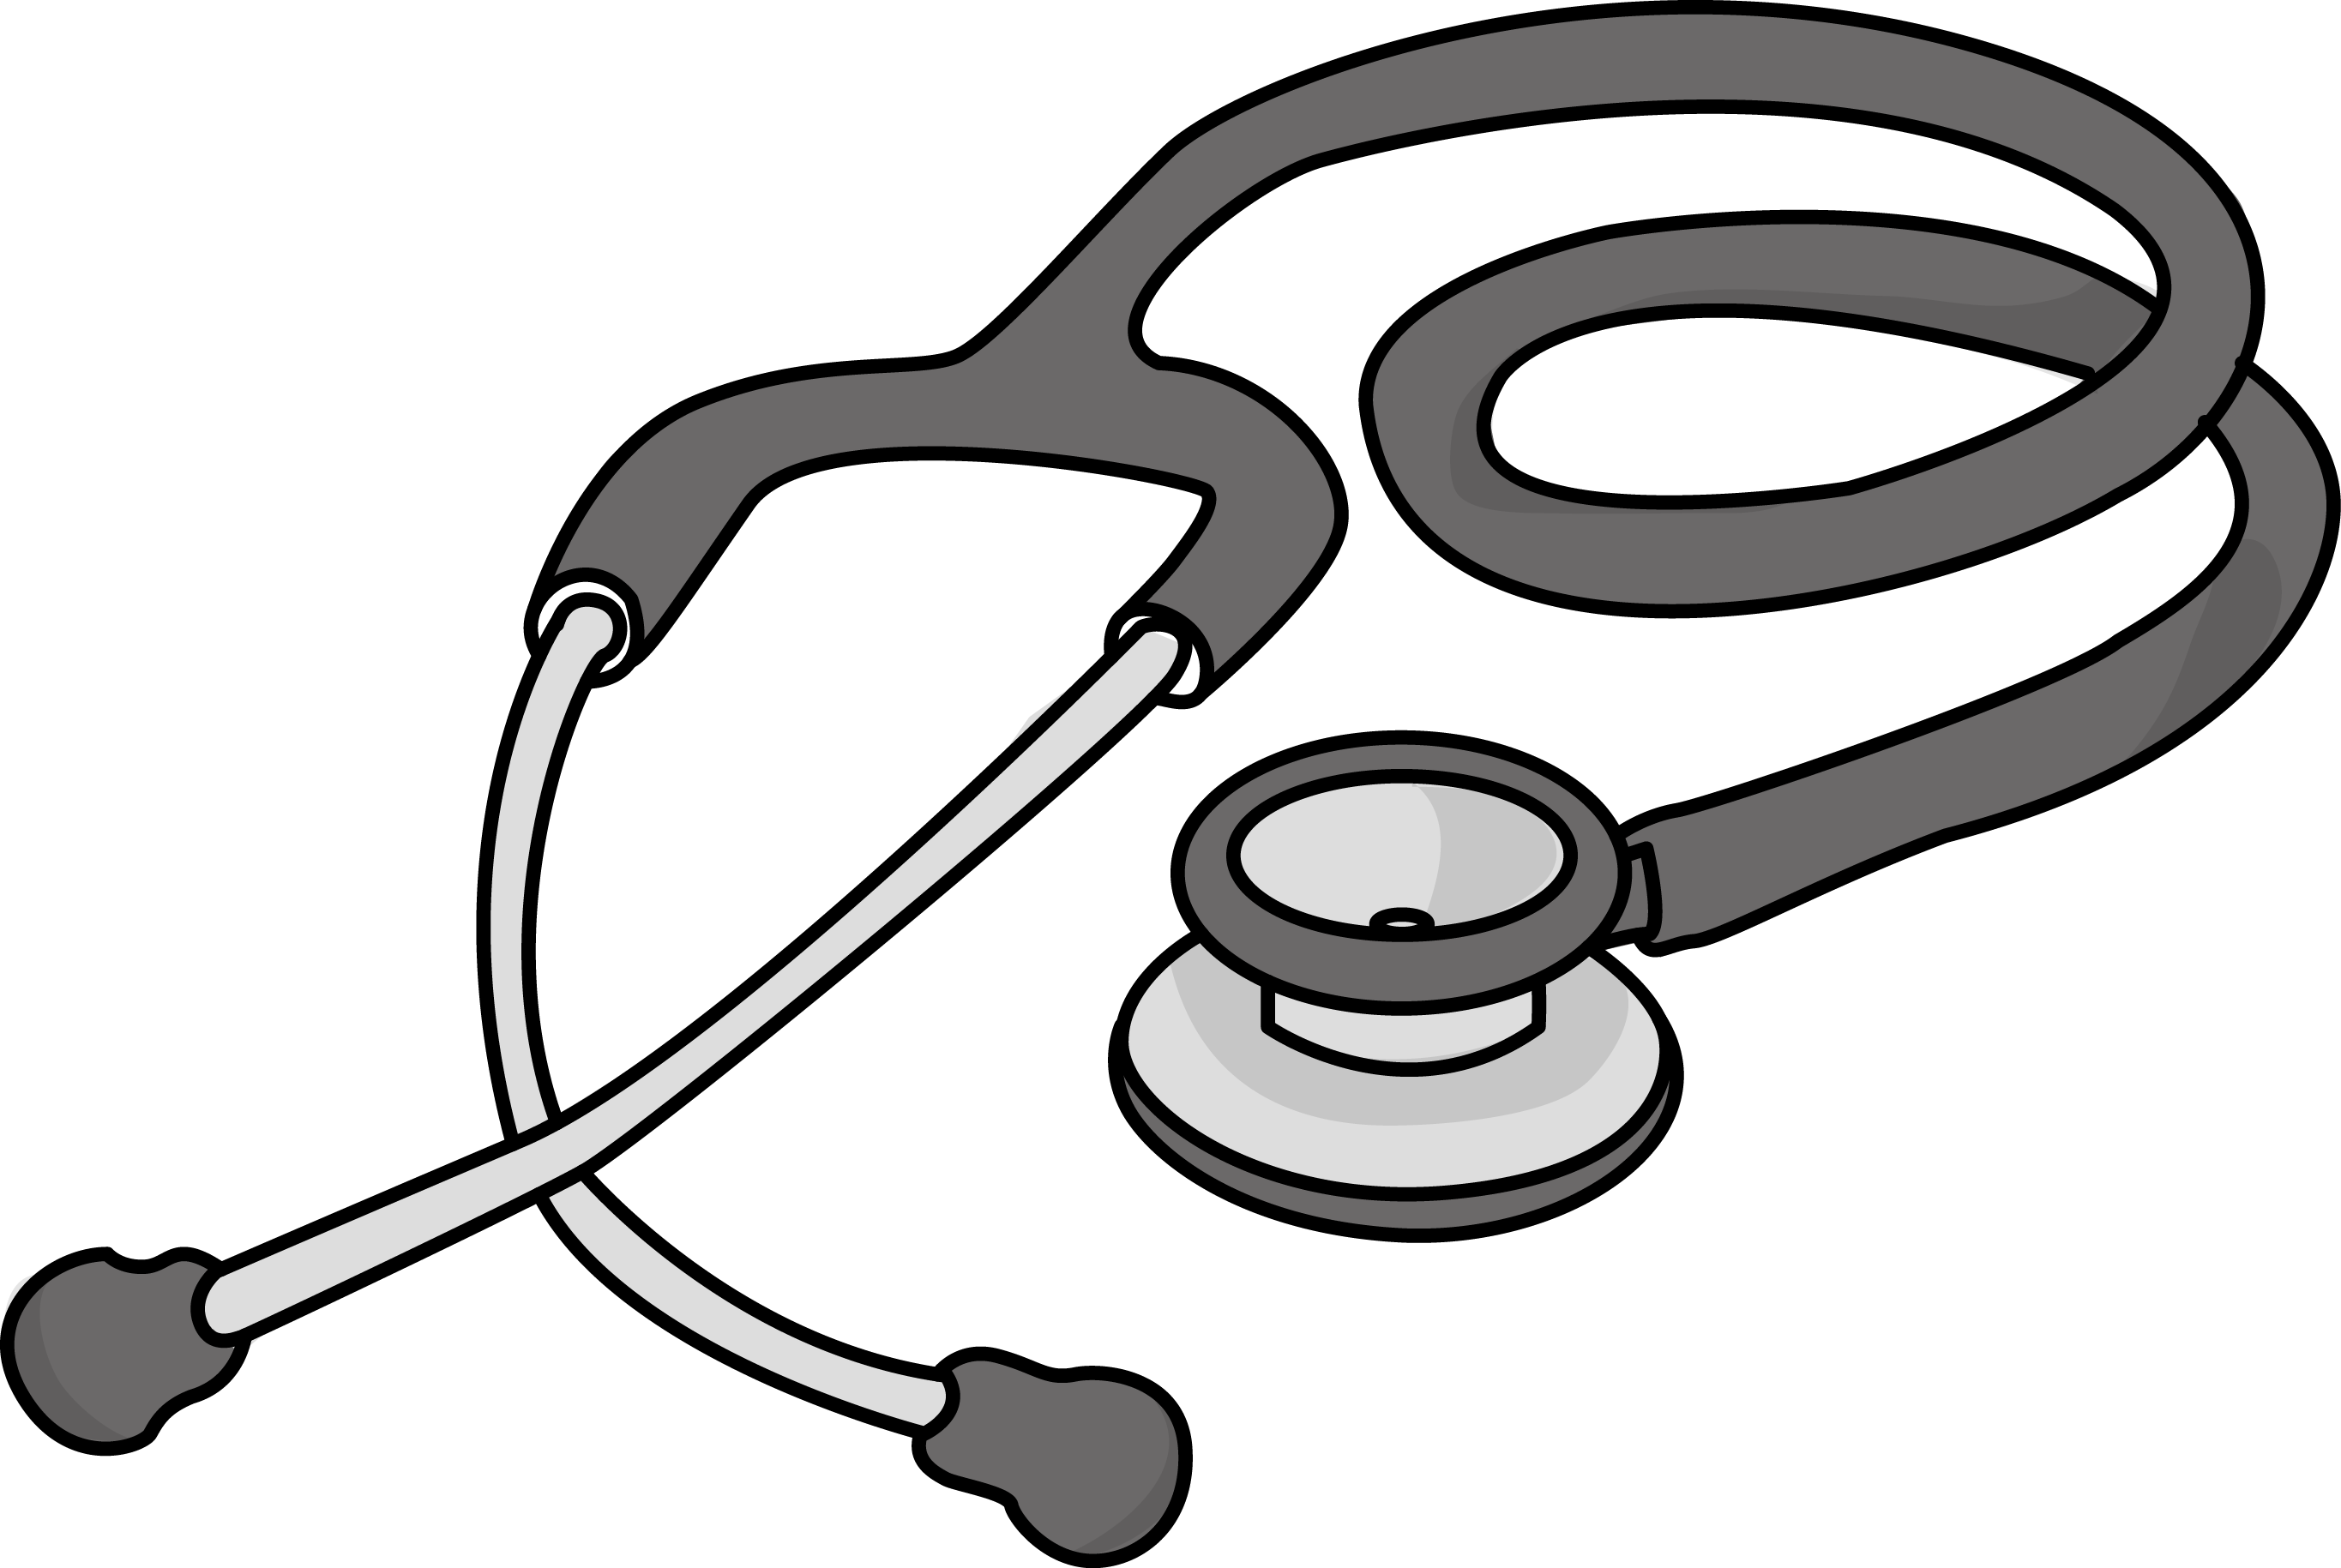 image for free cardiology stethoscope health high resolution clip rh pinterest com free download high resolution clipart high resolution clipart copyright free